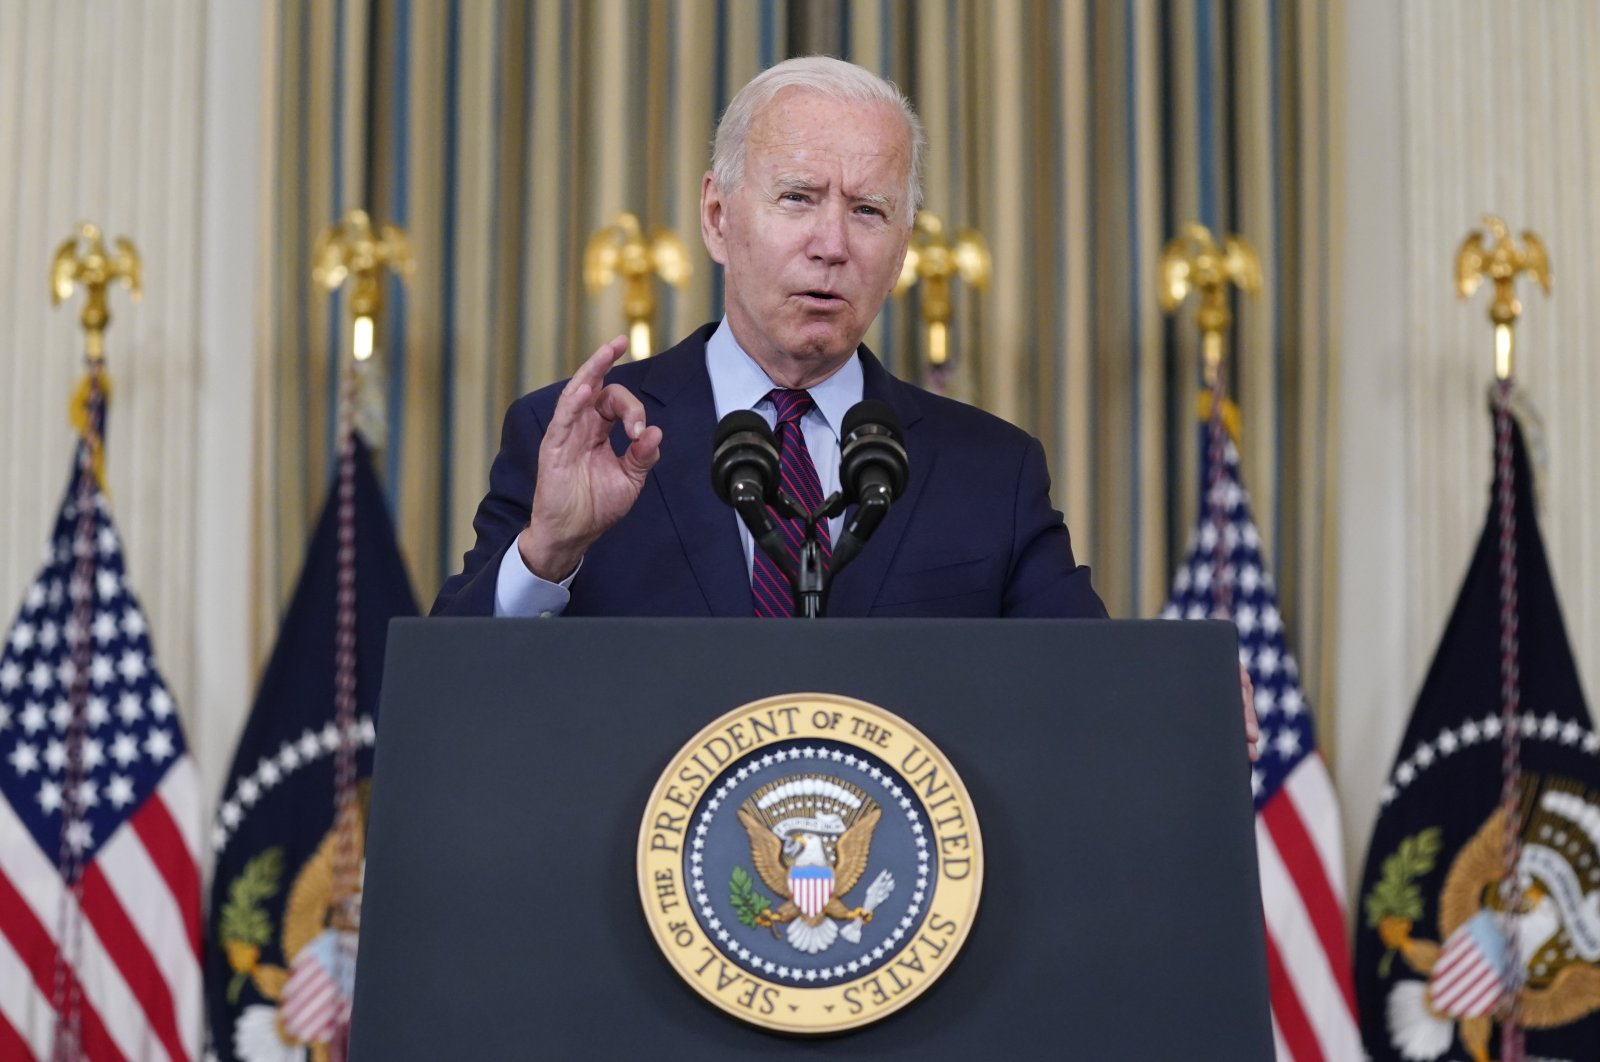 President Joe Biden delivers remarks on the debt ceiling during an event in the State Dining Room of the White House in Washington D.C., U.S., Oct. 4, 2021. (AP Photo)